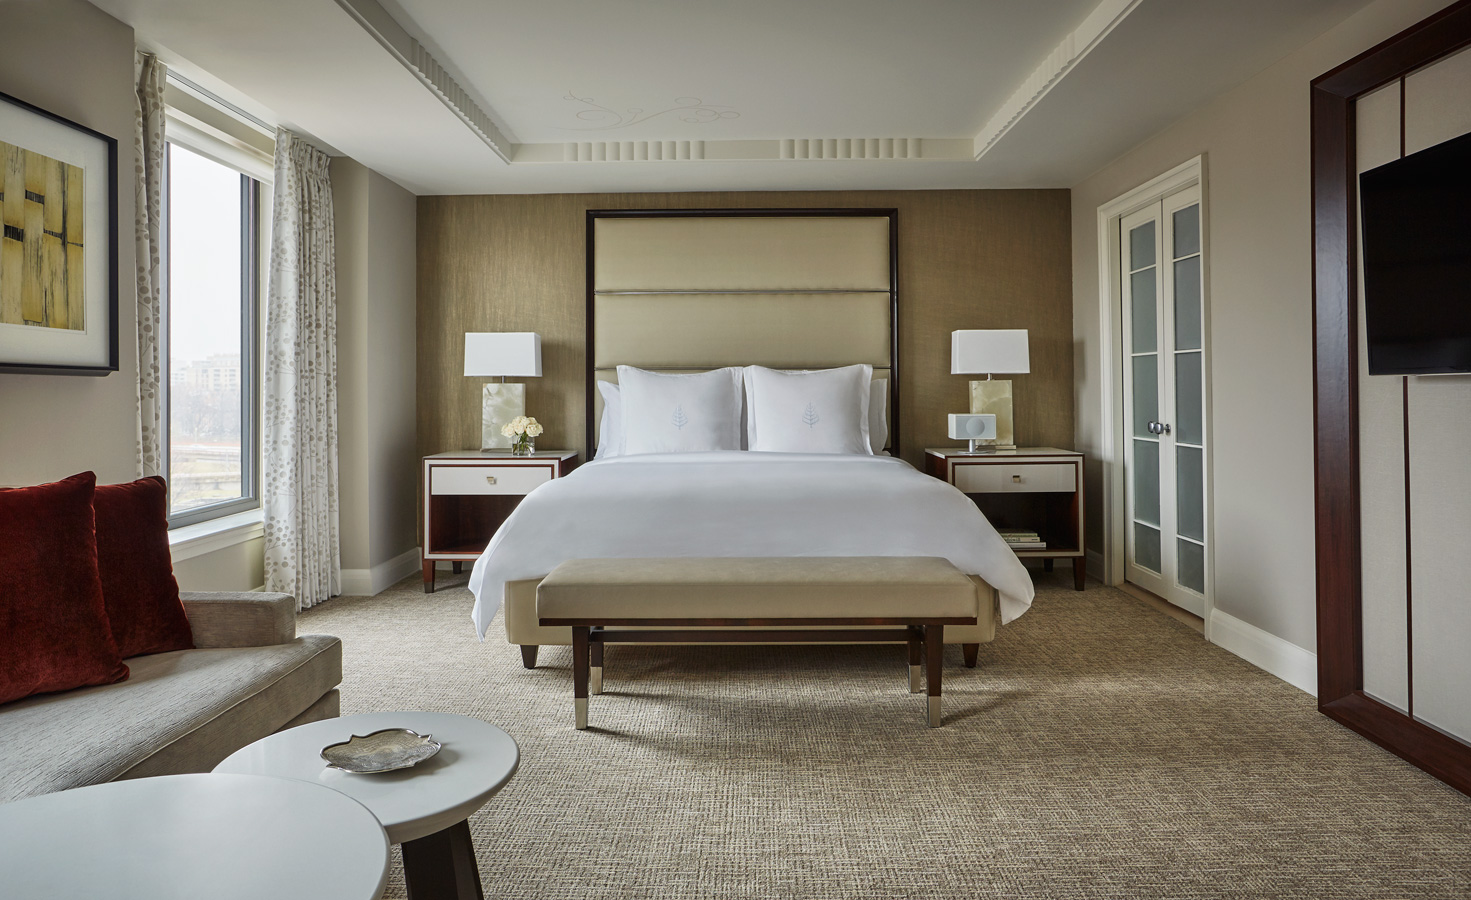 Renovated guest bedroom at Four Seasons hotel